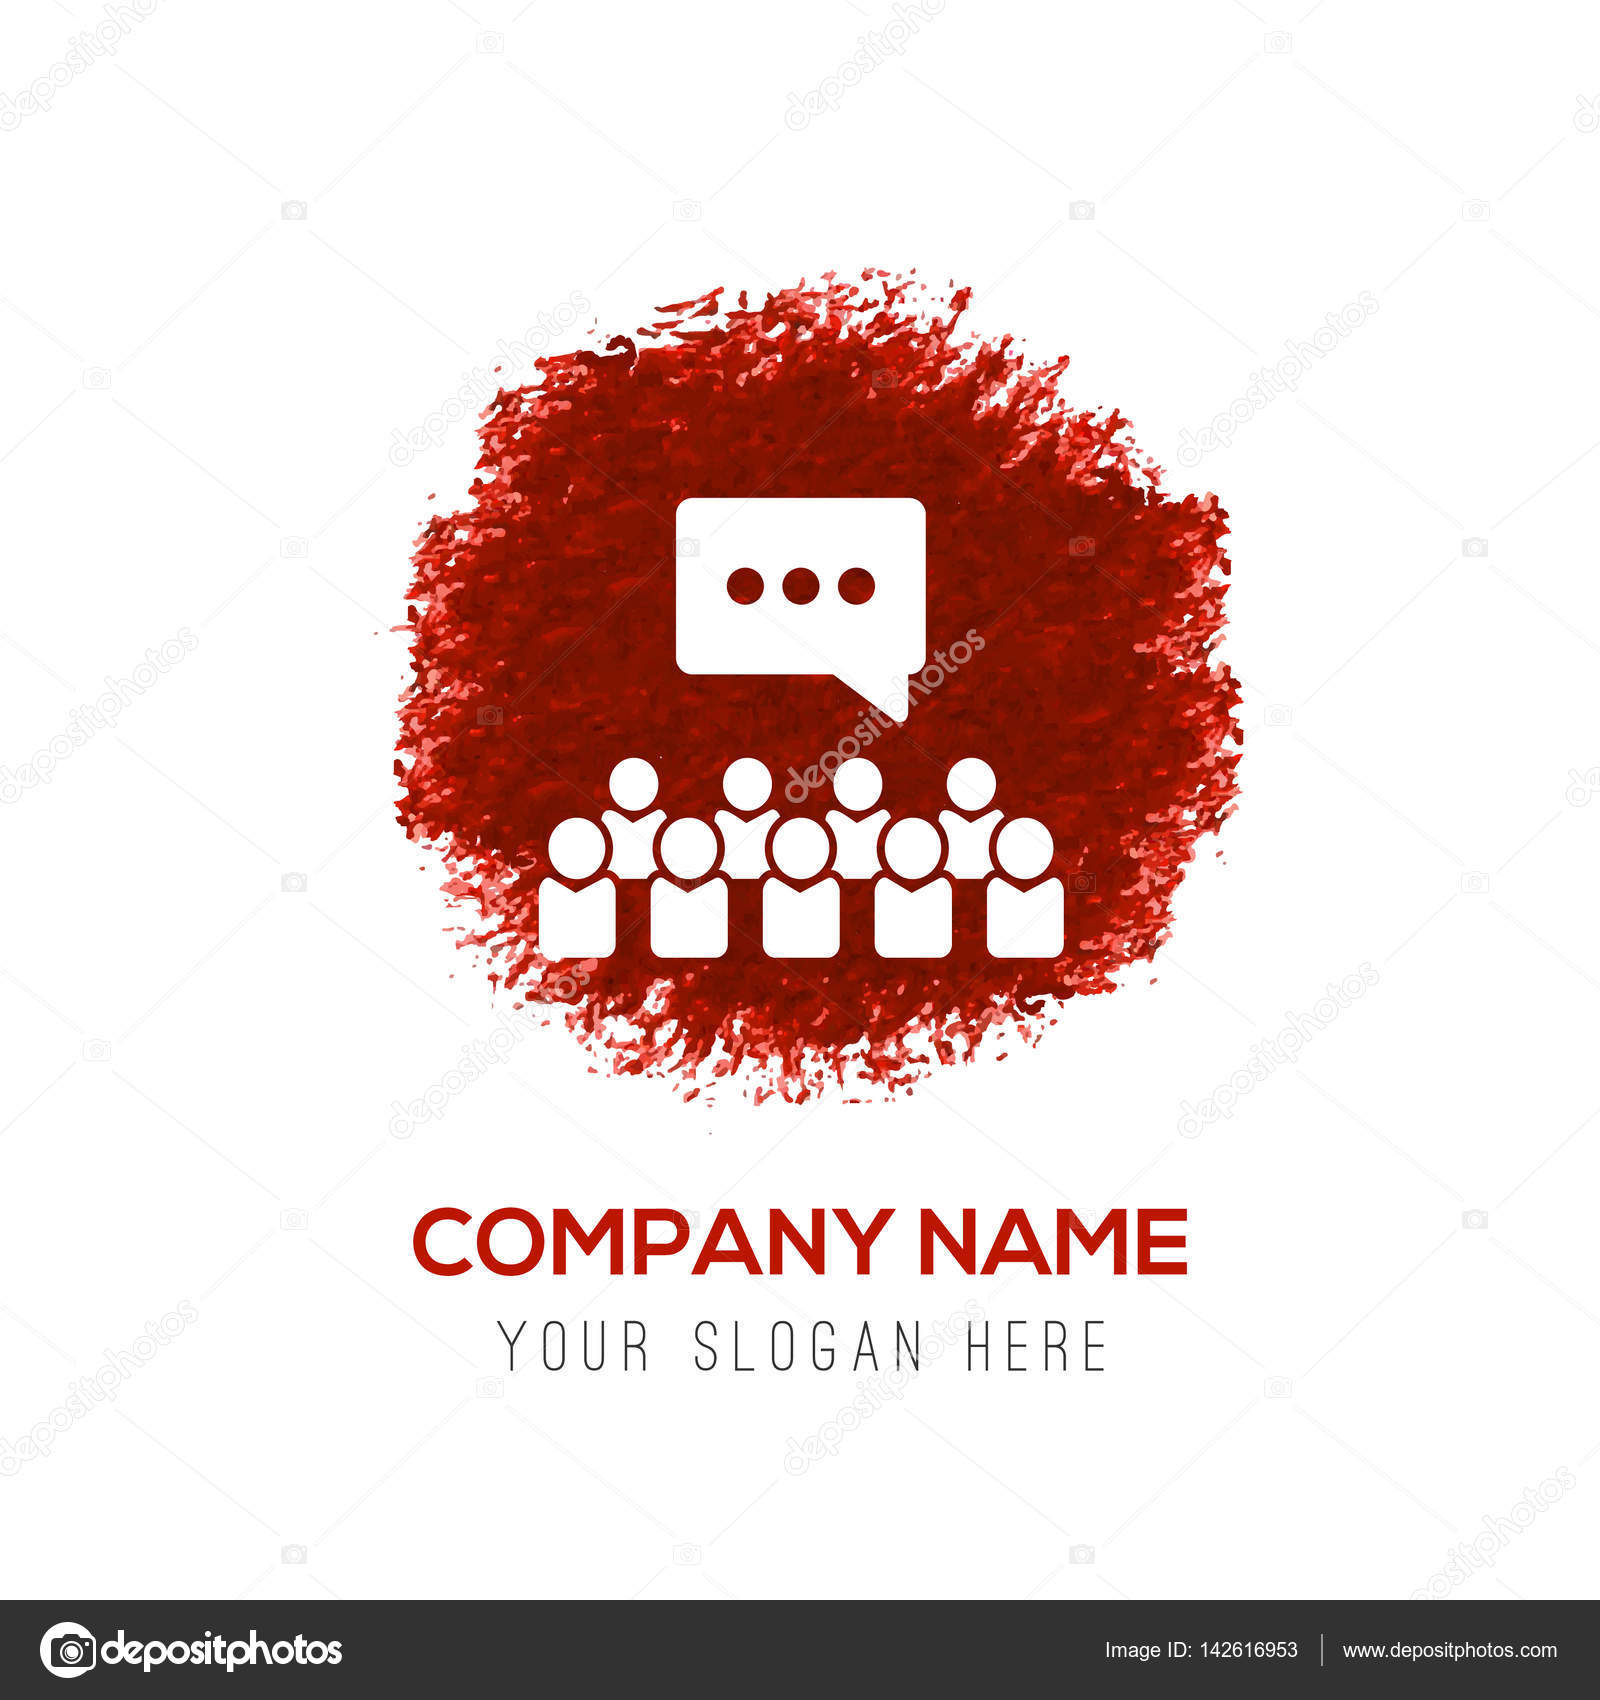 Idea generator talking to people stock vector ibrandify 142616953 idea generator talking to people stock vector biocorpaavc Image collections